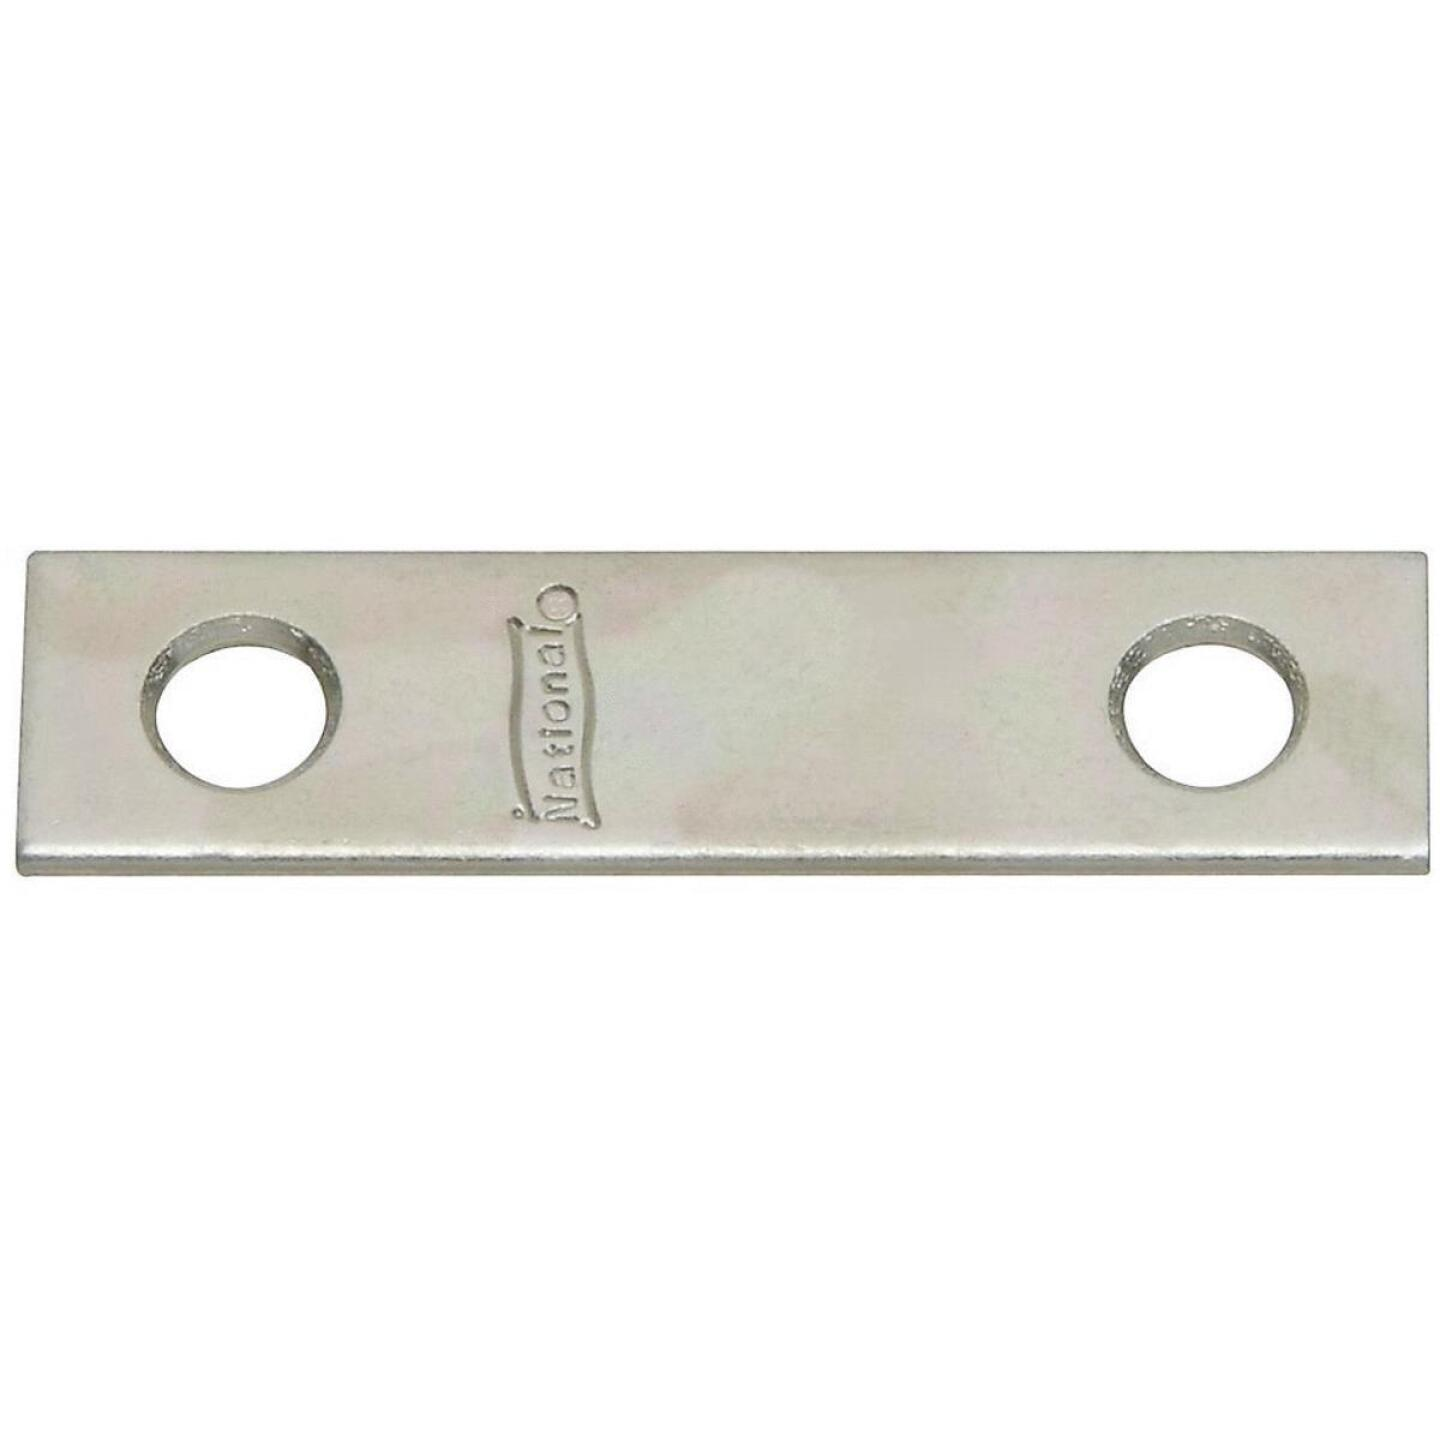 National Catalog 118 2 In. x 1/2 In. Zinc Steel Mending Brace (4-Count) Image 1